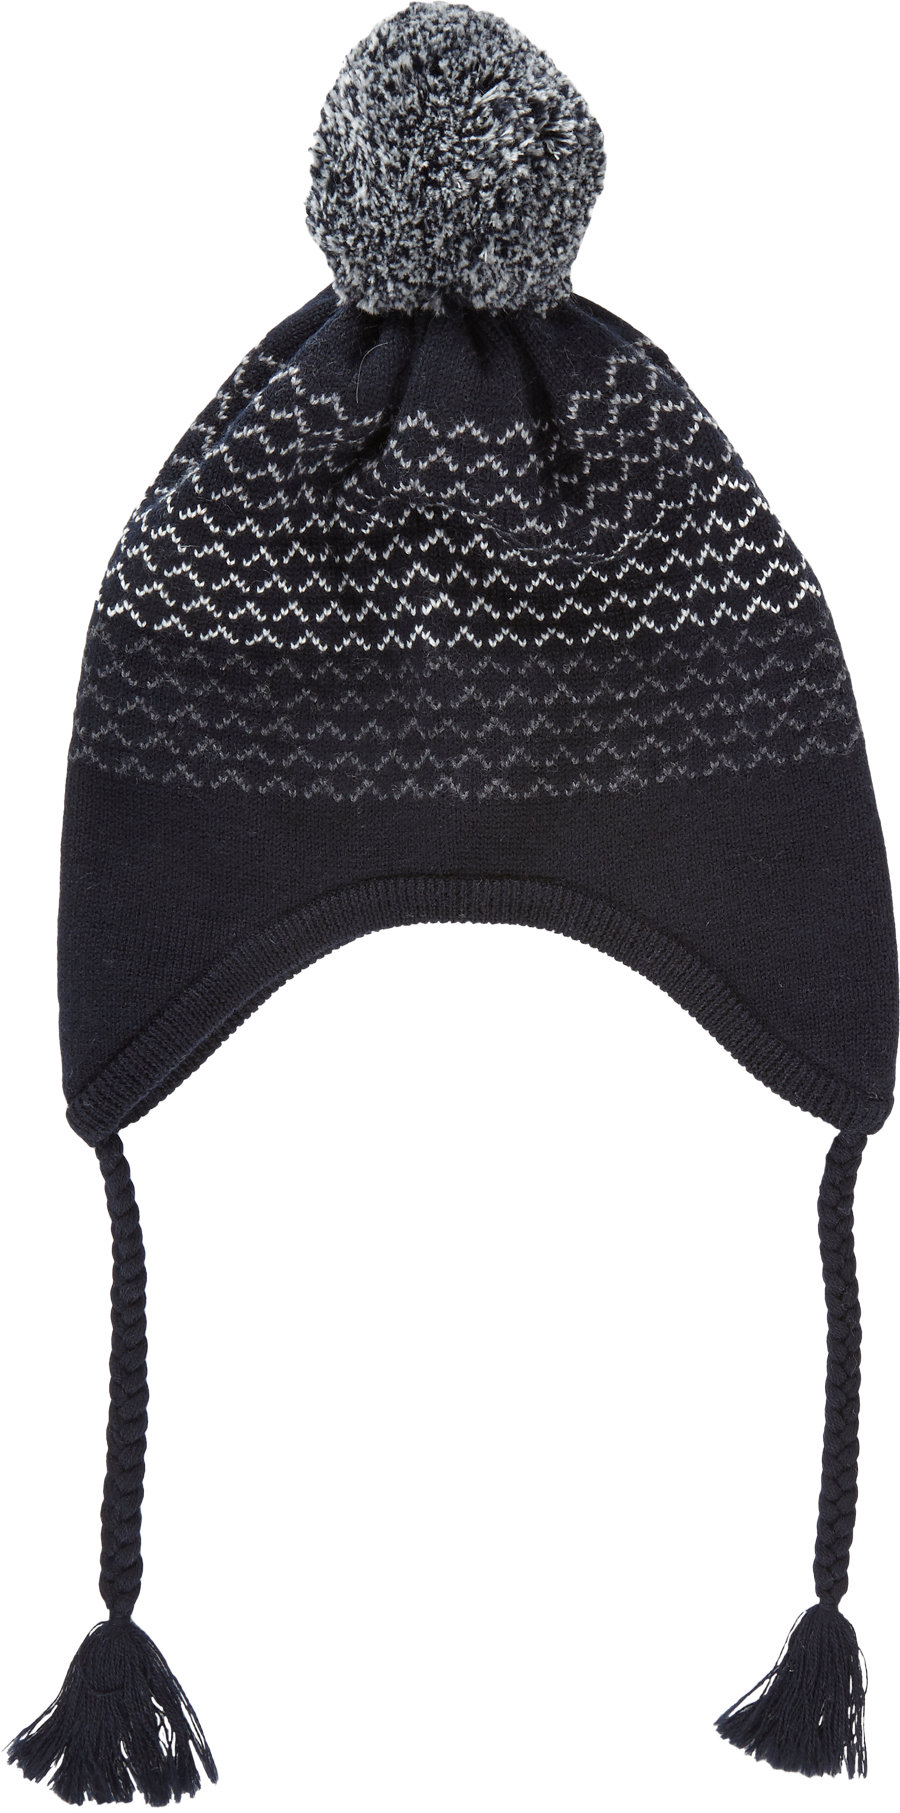 Thom Grey Knit Ear Flap Hat in Blue for Men - Lyst f2ec3955713